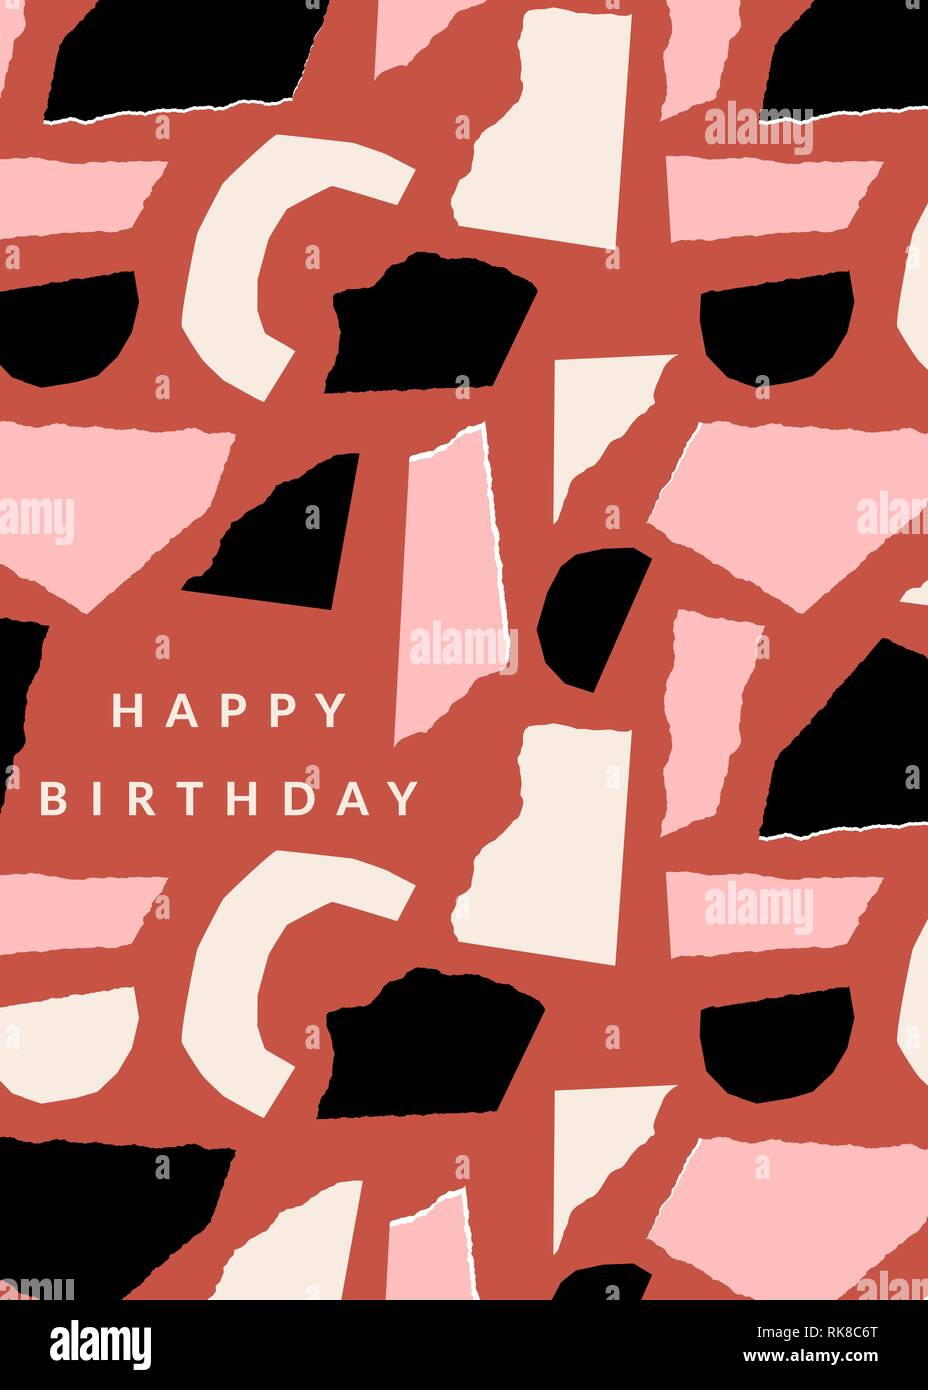 Greeting card template with paper cut shapes in black, pastel pink Inside Birthday Card Collage Template